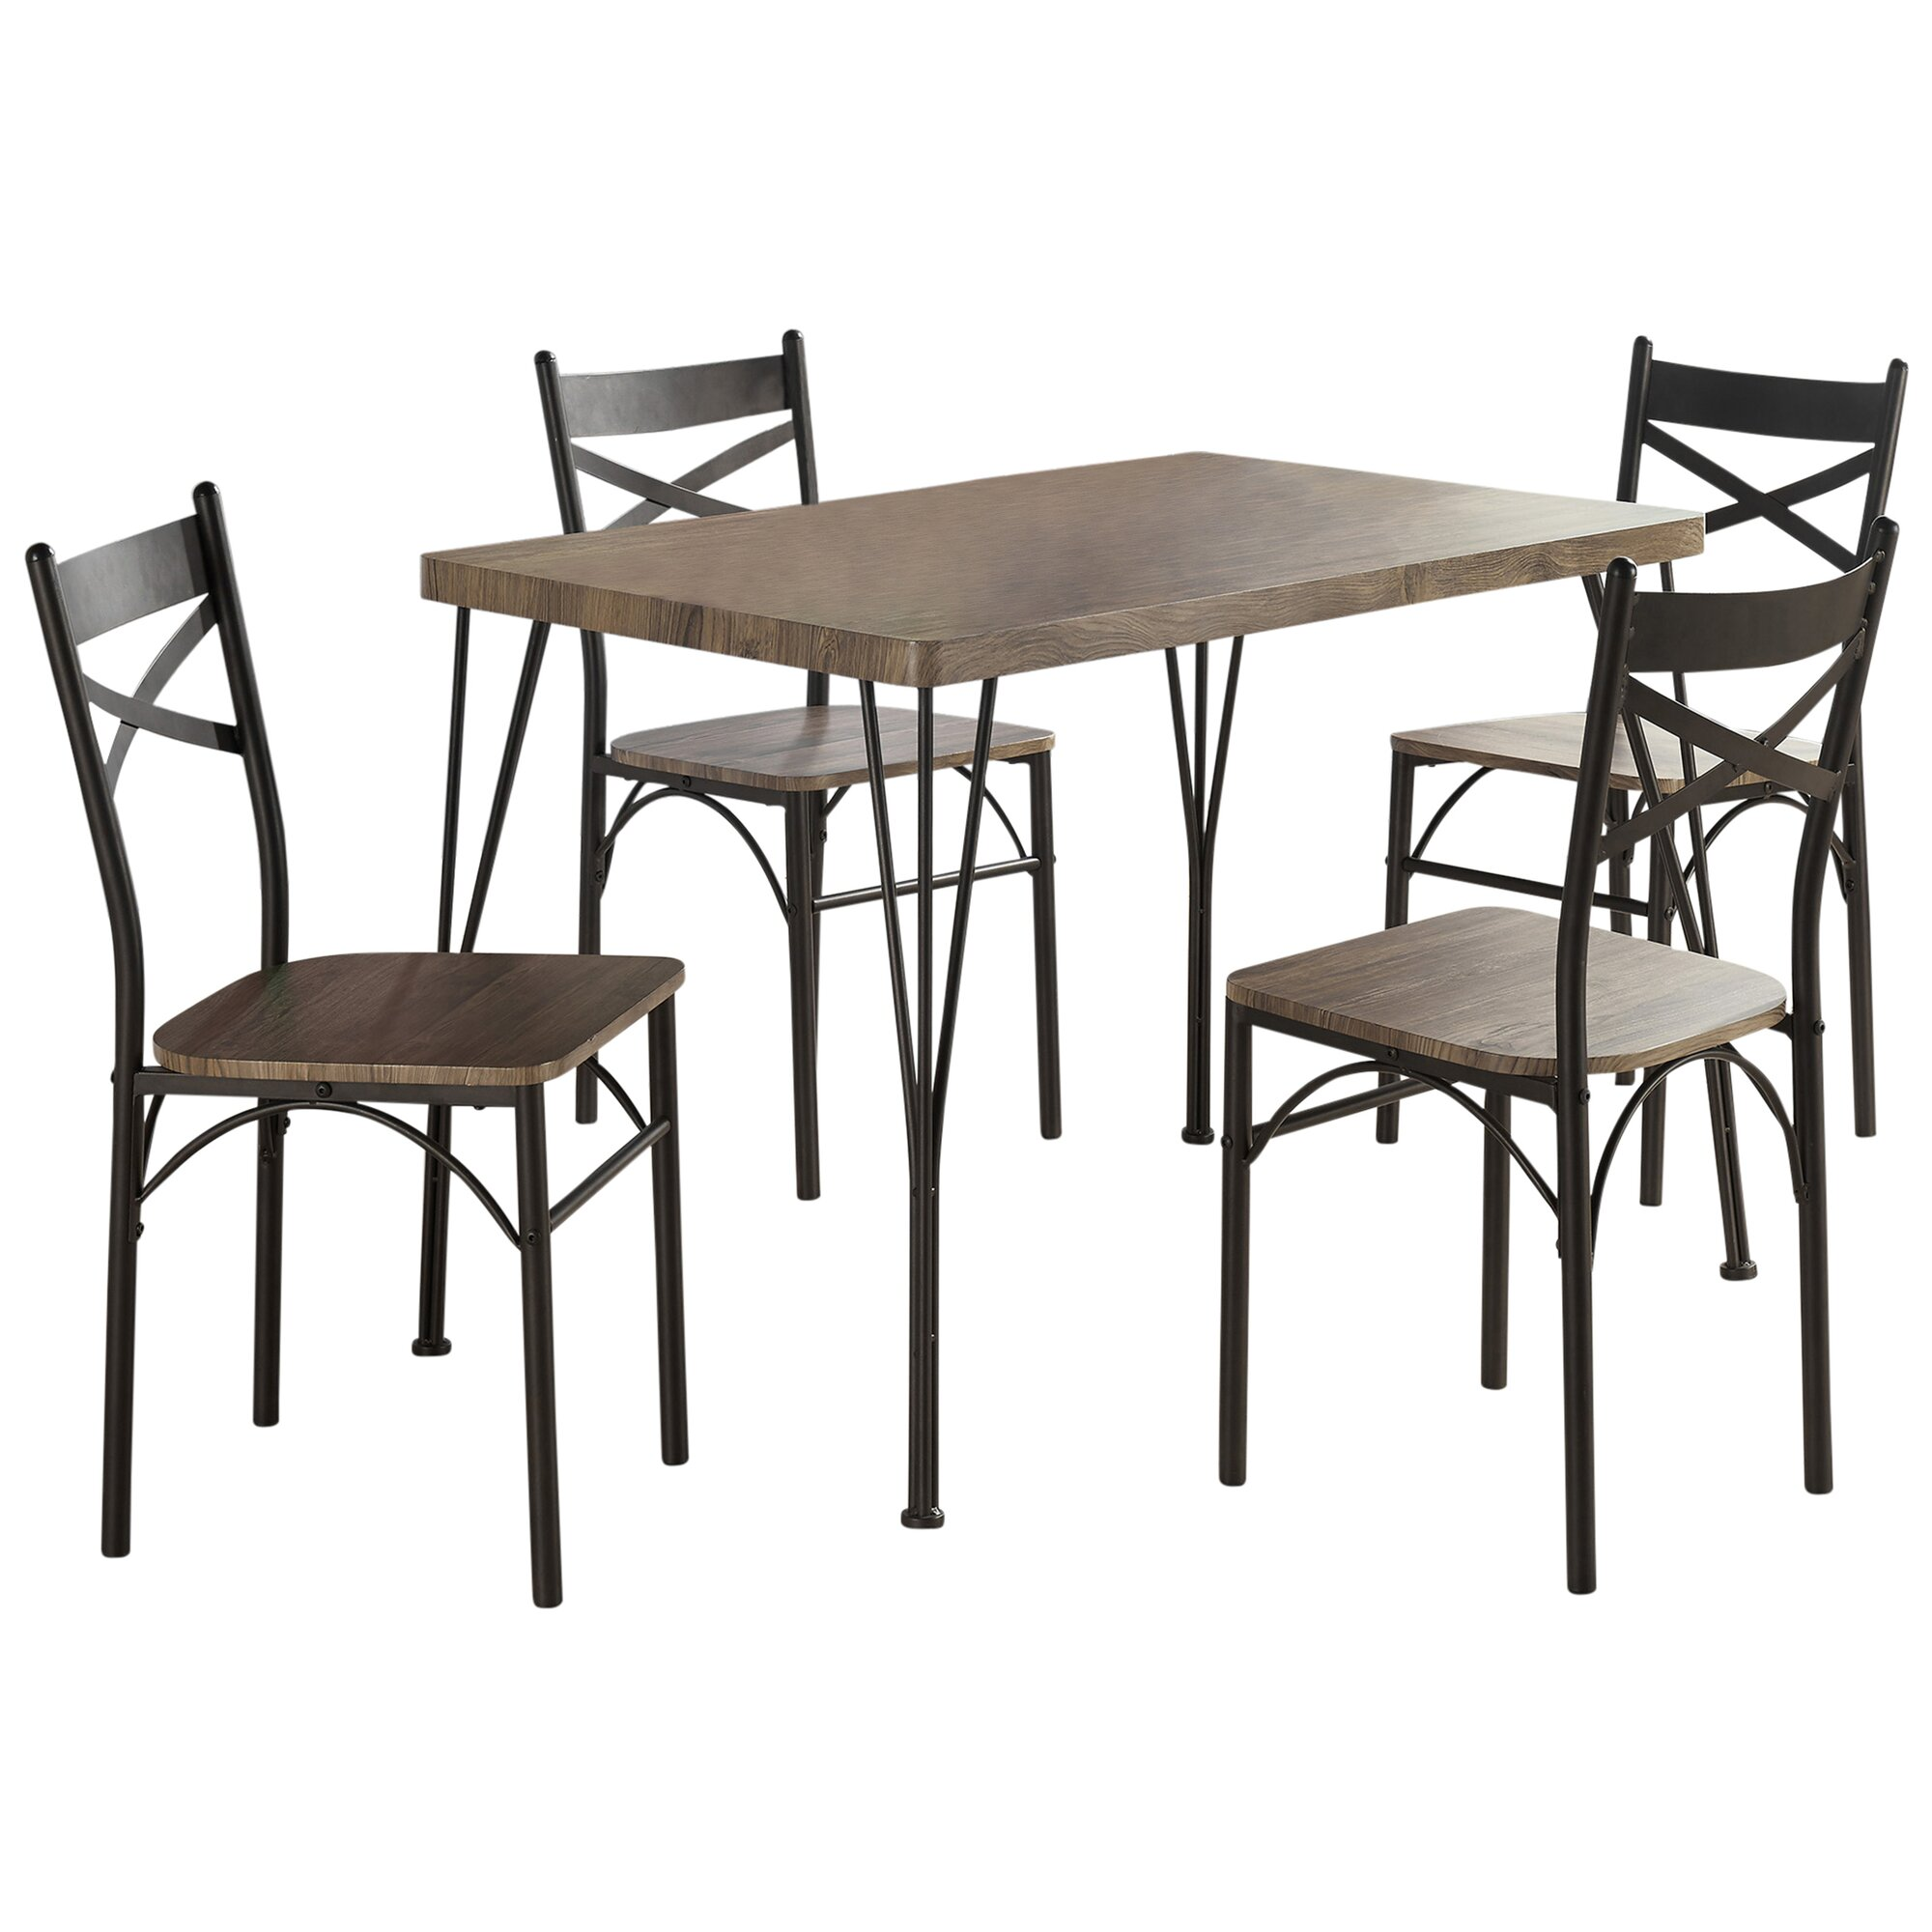 Gracie Oaks Sangerfield 5 Piece Industrial Style Dining